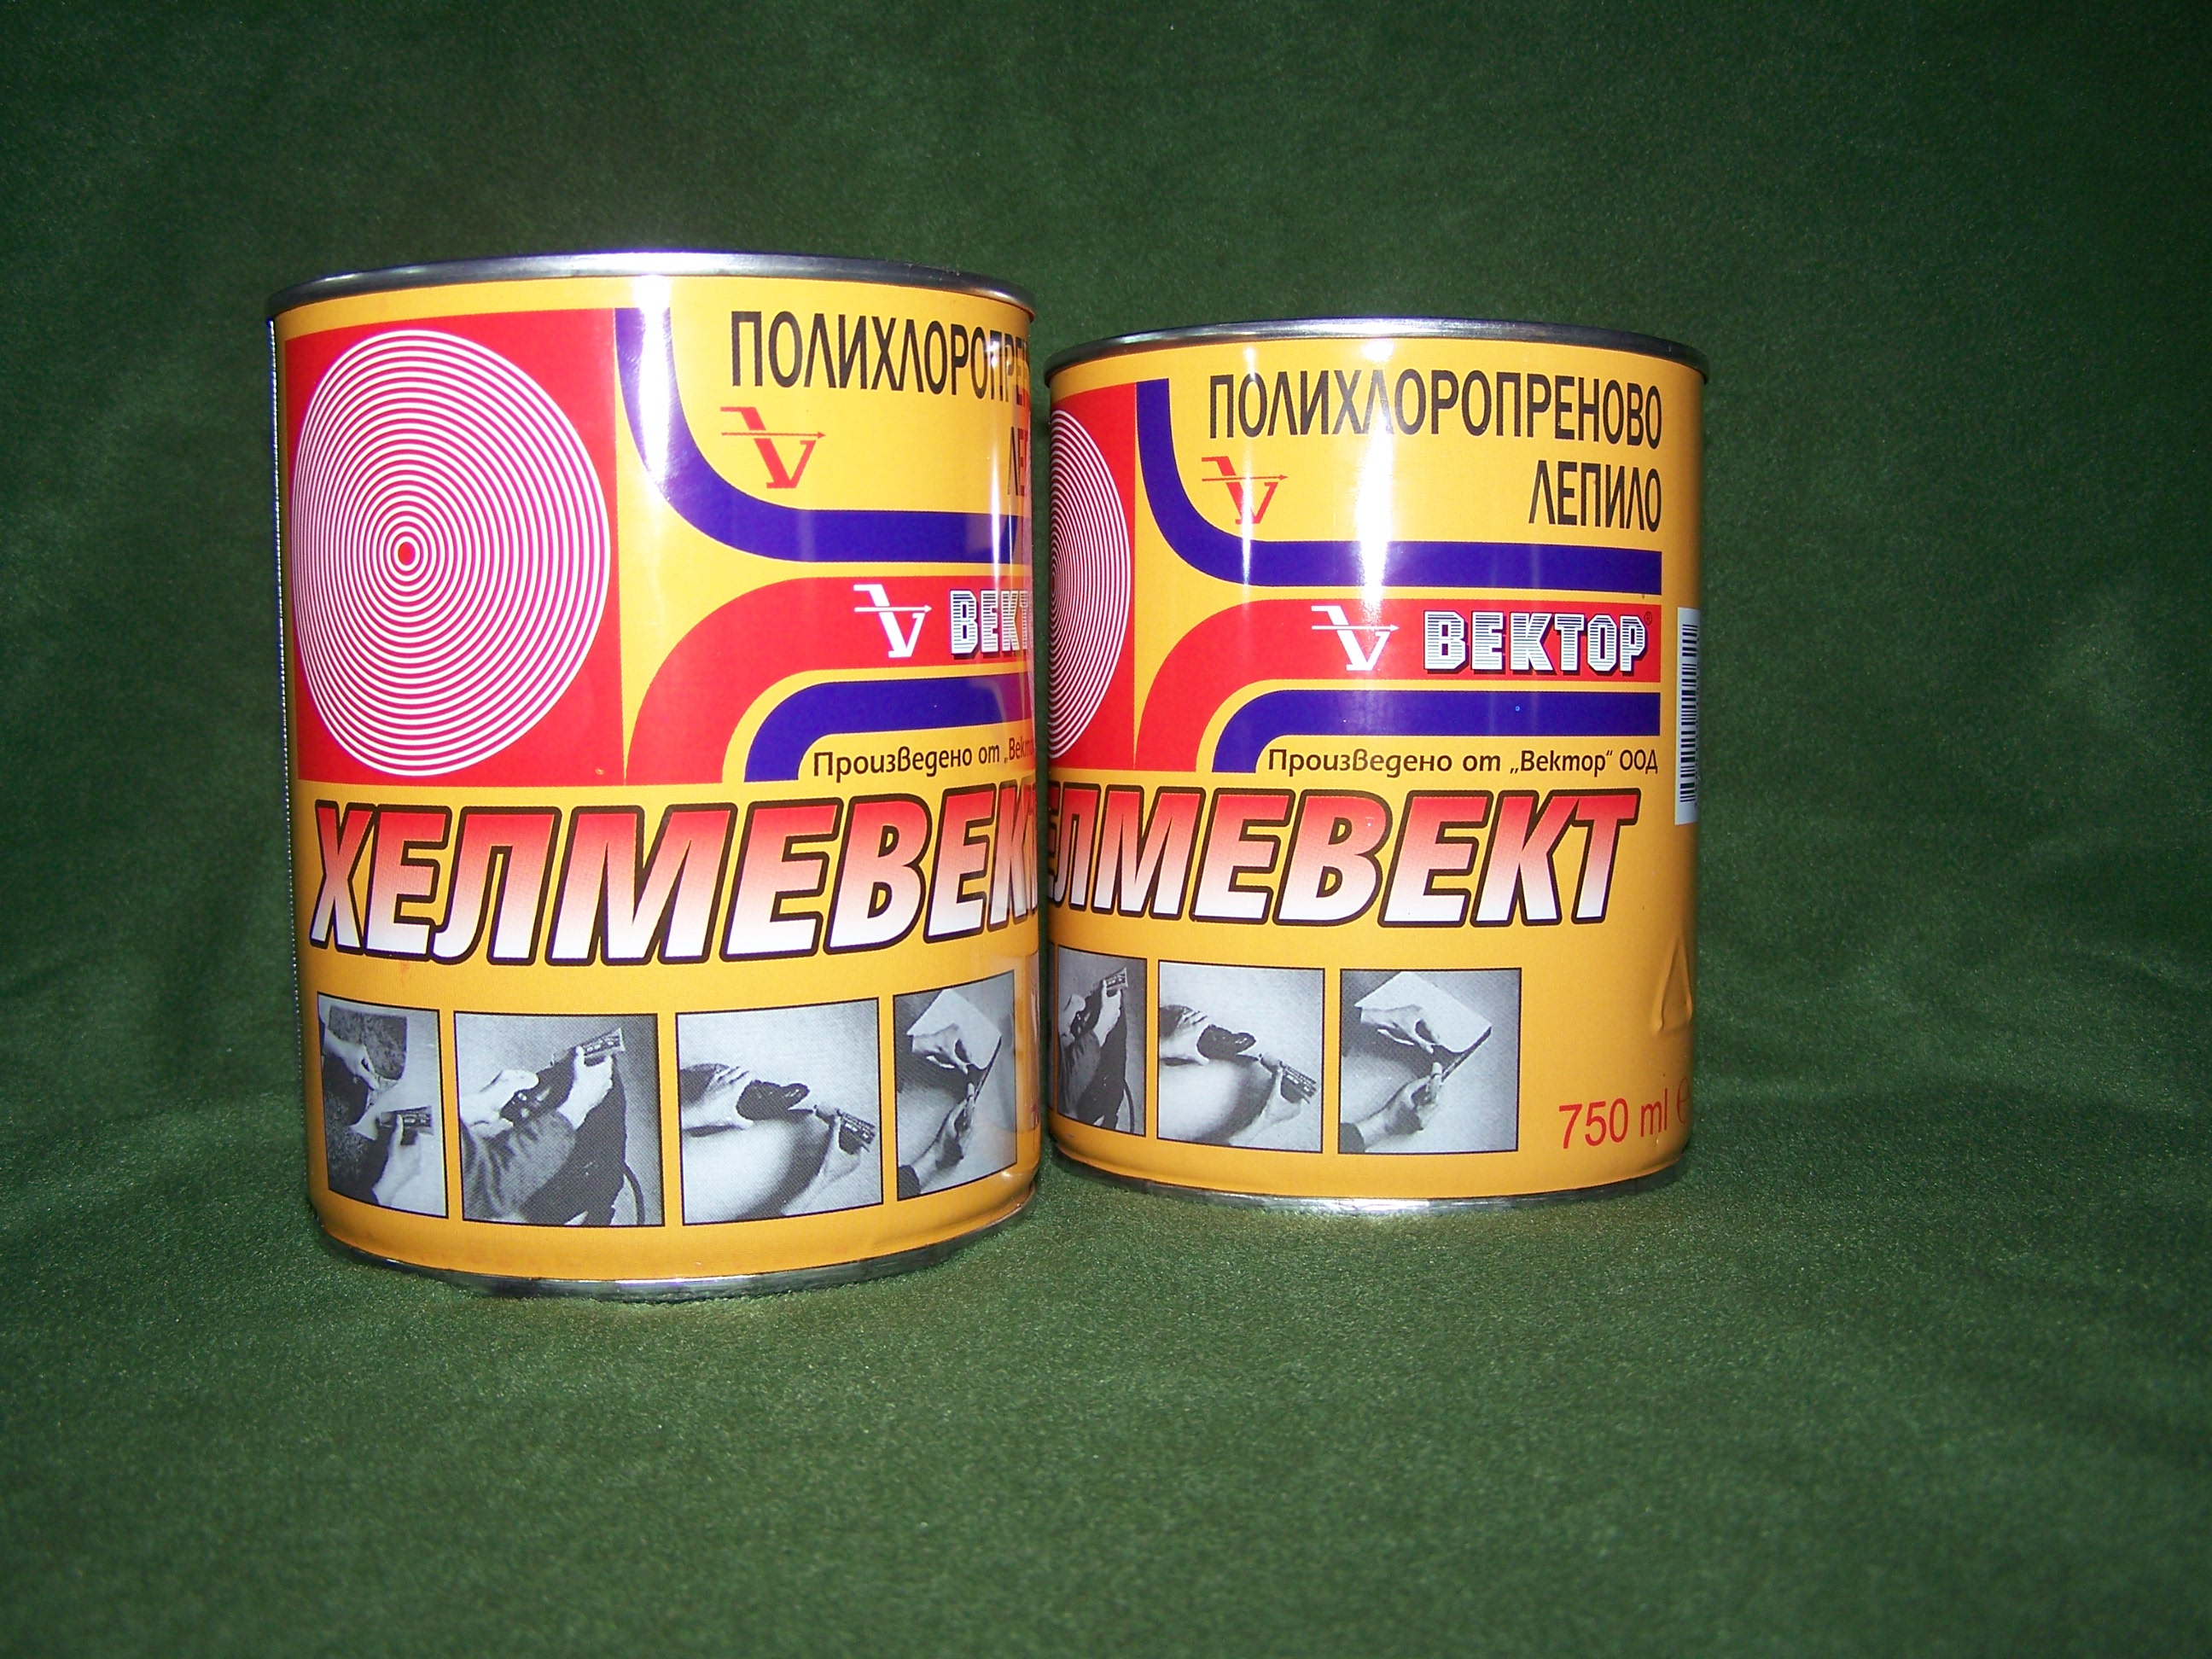 Helmevekt 750 ml